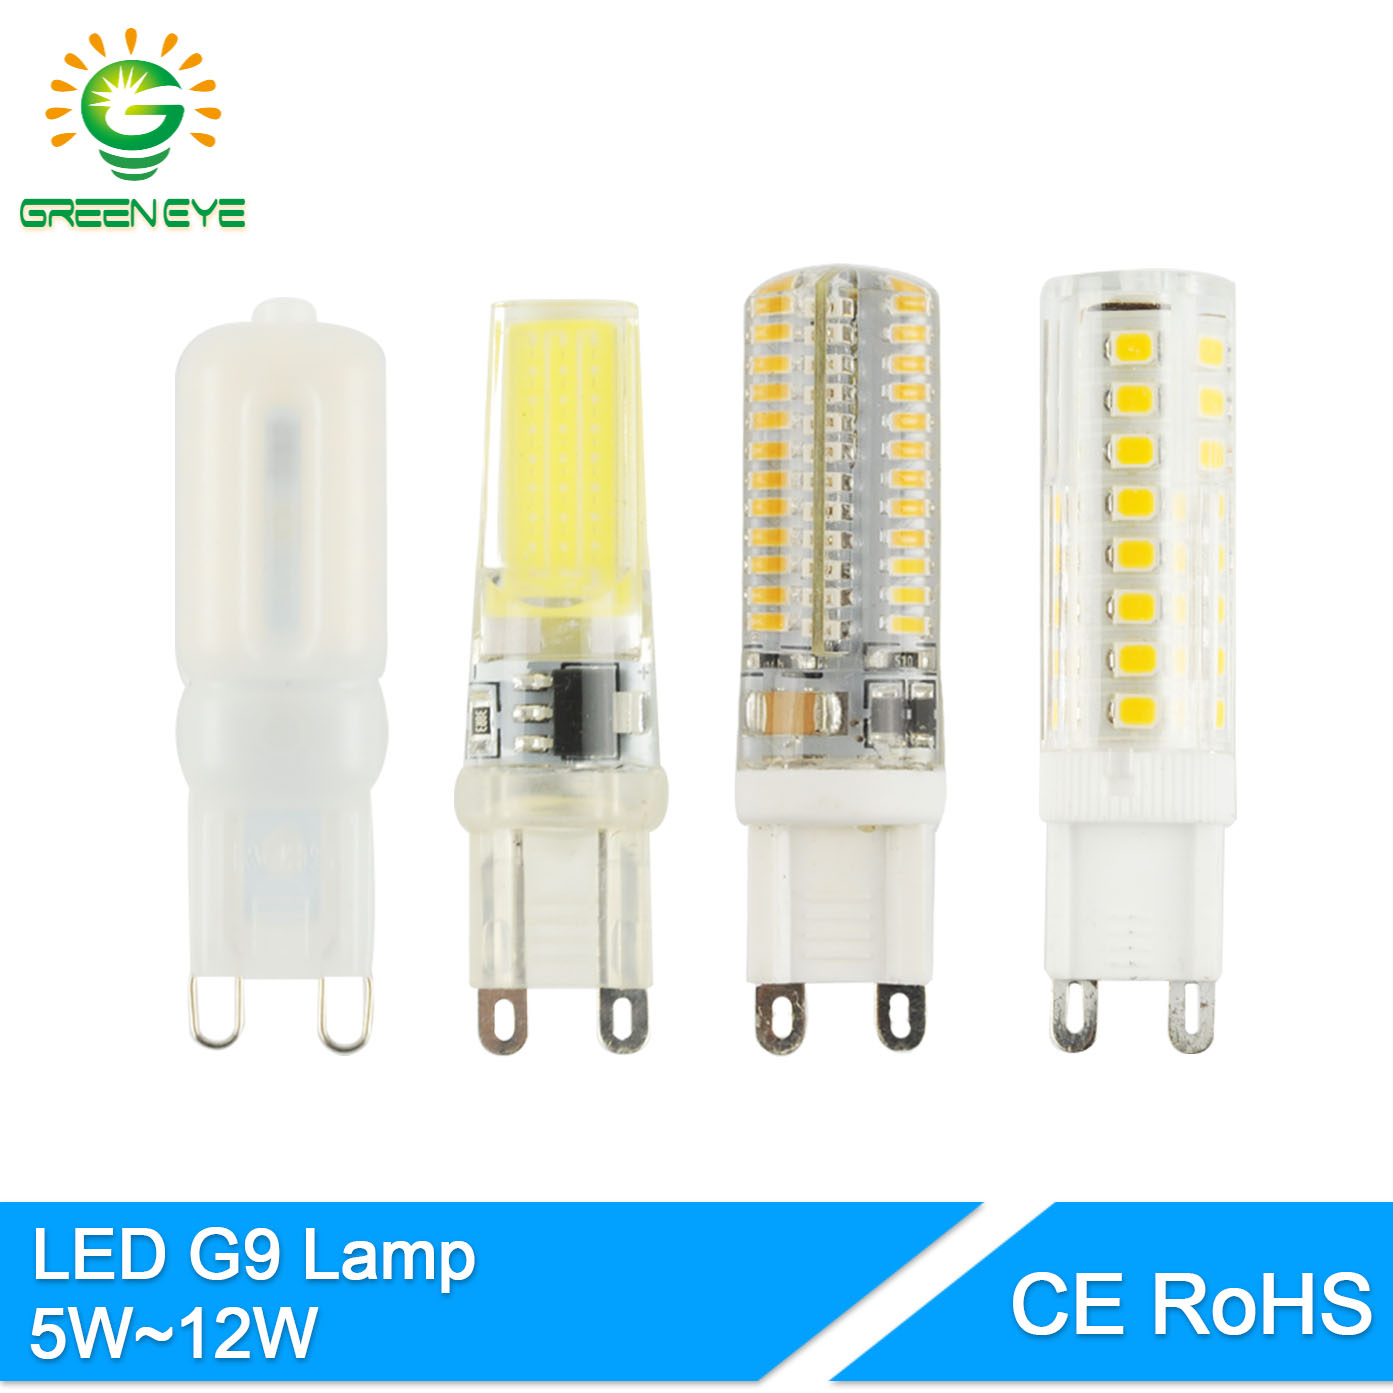 greeneye 5w 12w led g9 bulb dimmable cob ac 220v led light replace halogen lamp g9 led light. Black Bedroom Furniture Sets. Home Design Ideas